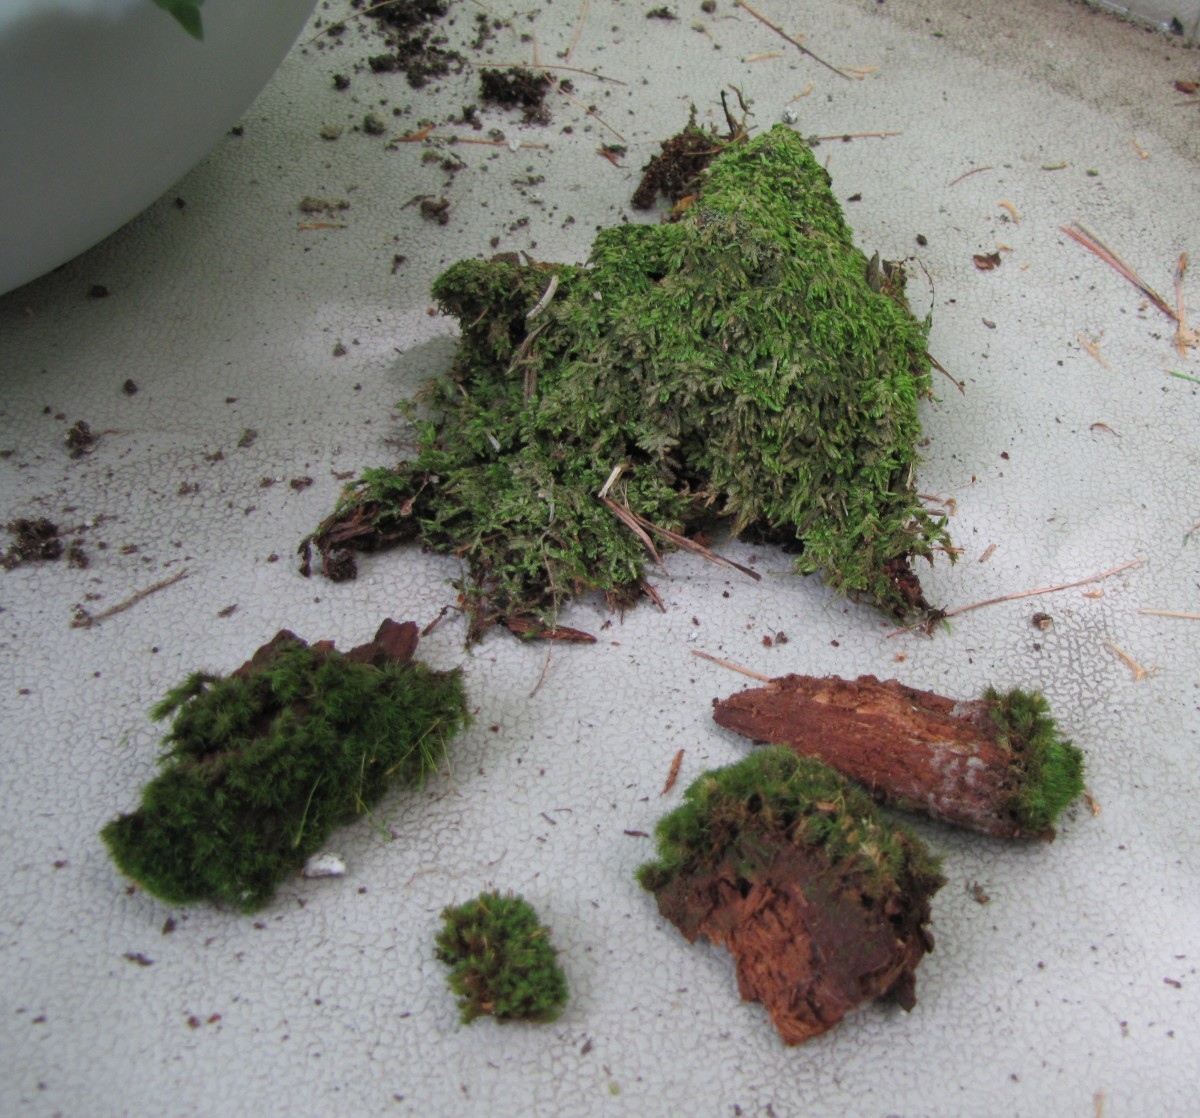 I have a shady yard, so I was able to gather this moss from the base of some trees.